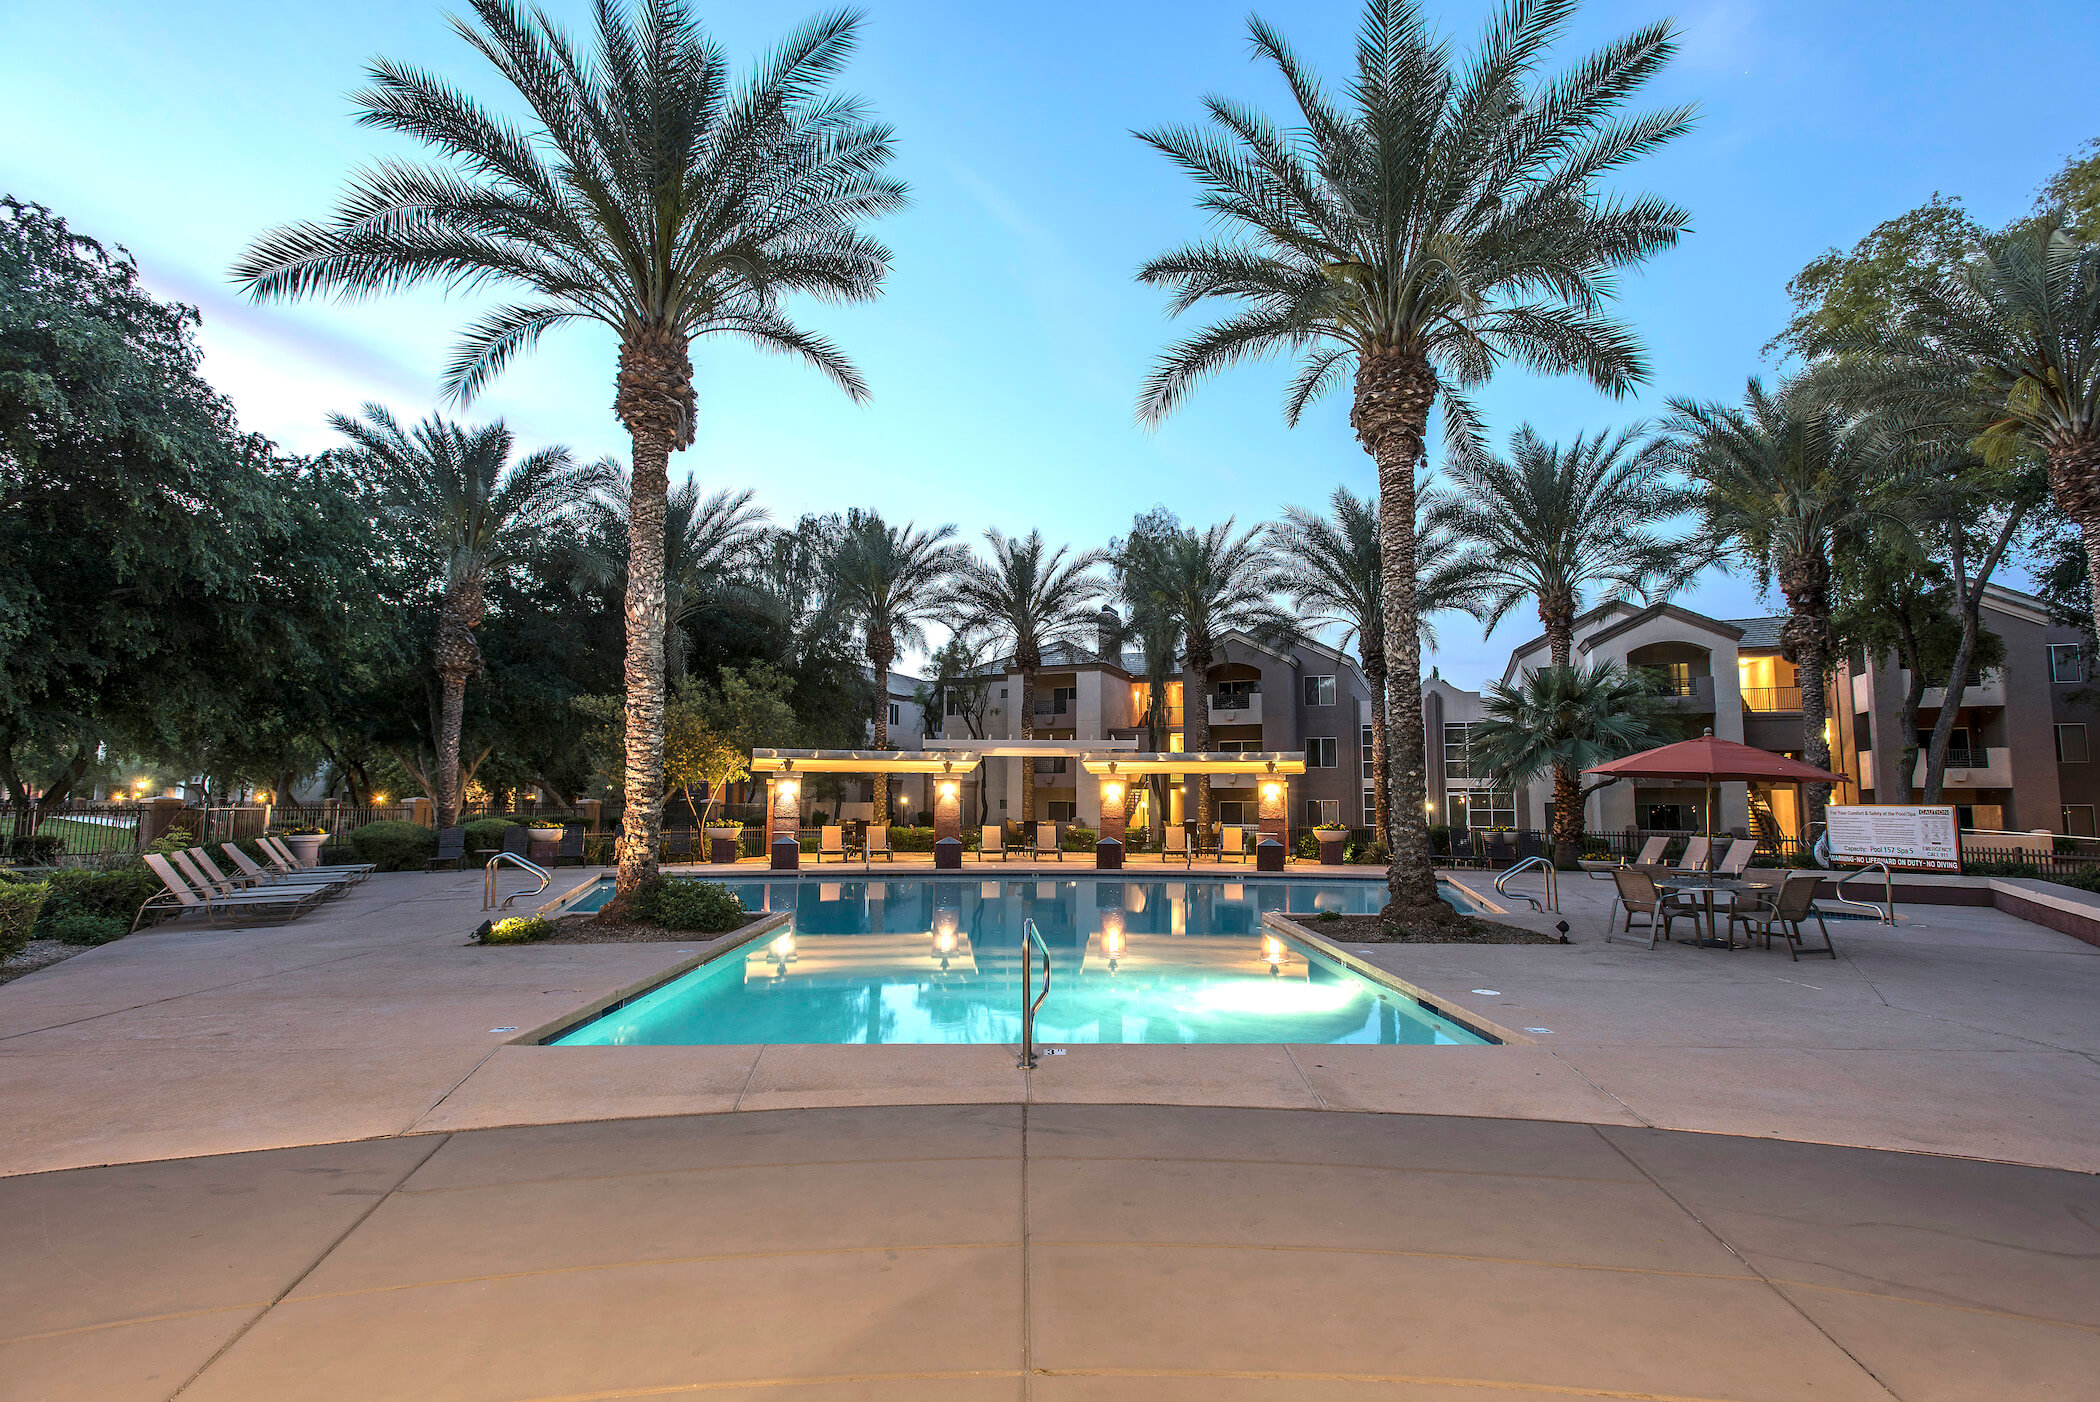 TruAmerica Multifamily Acquires Covington Park in Phoenix, AZ Photo Credit Scott Sandler Photography